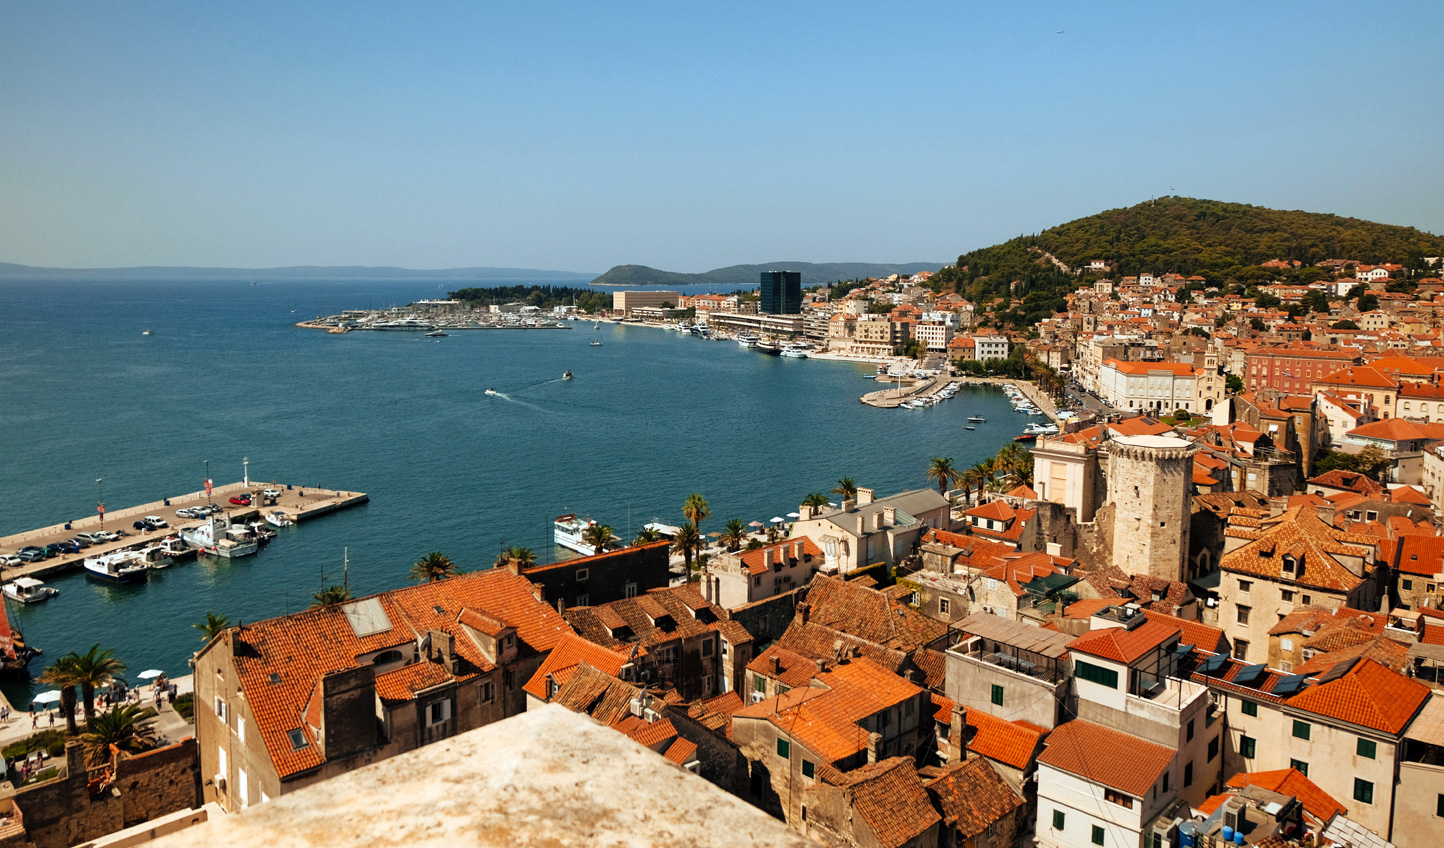 Climb atop the Cathedral for panoramic views across Split